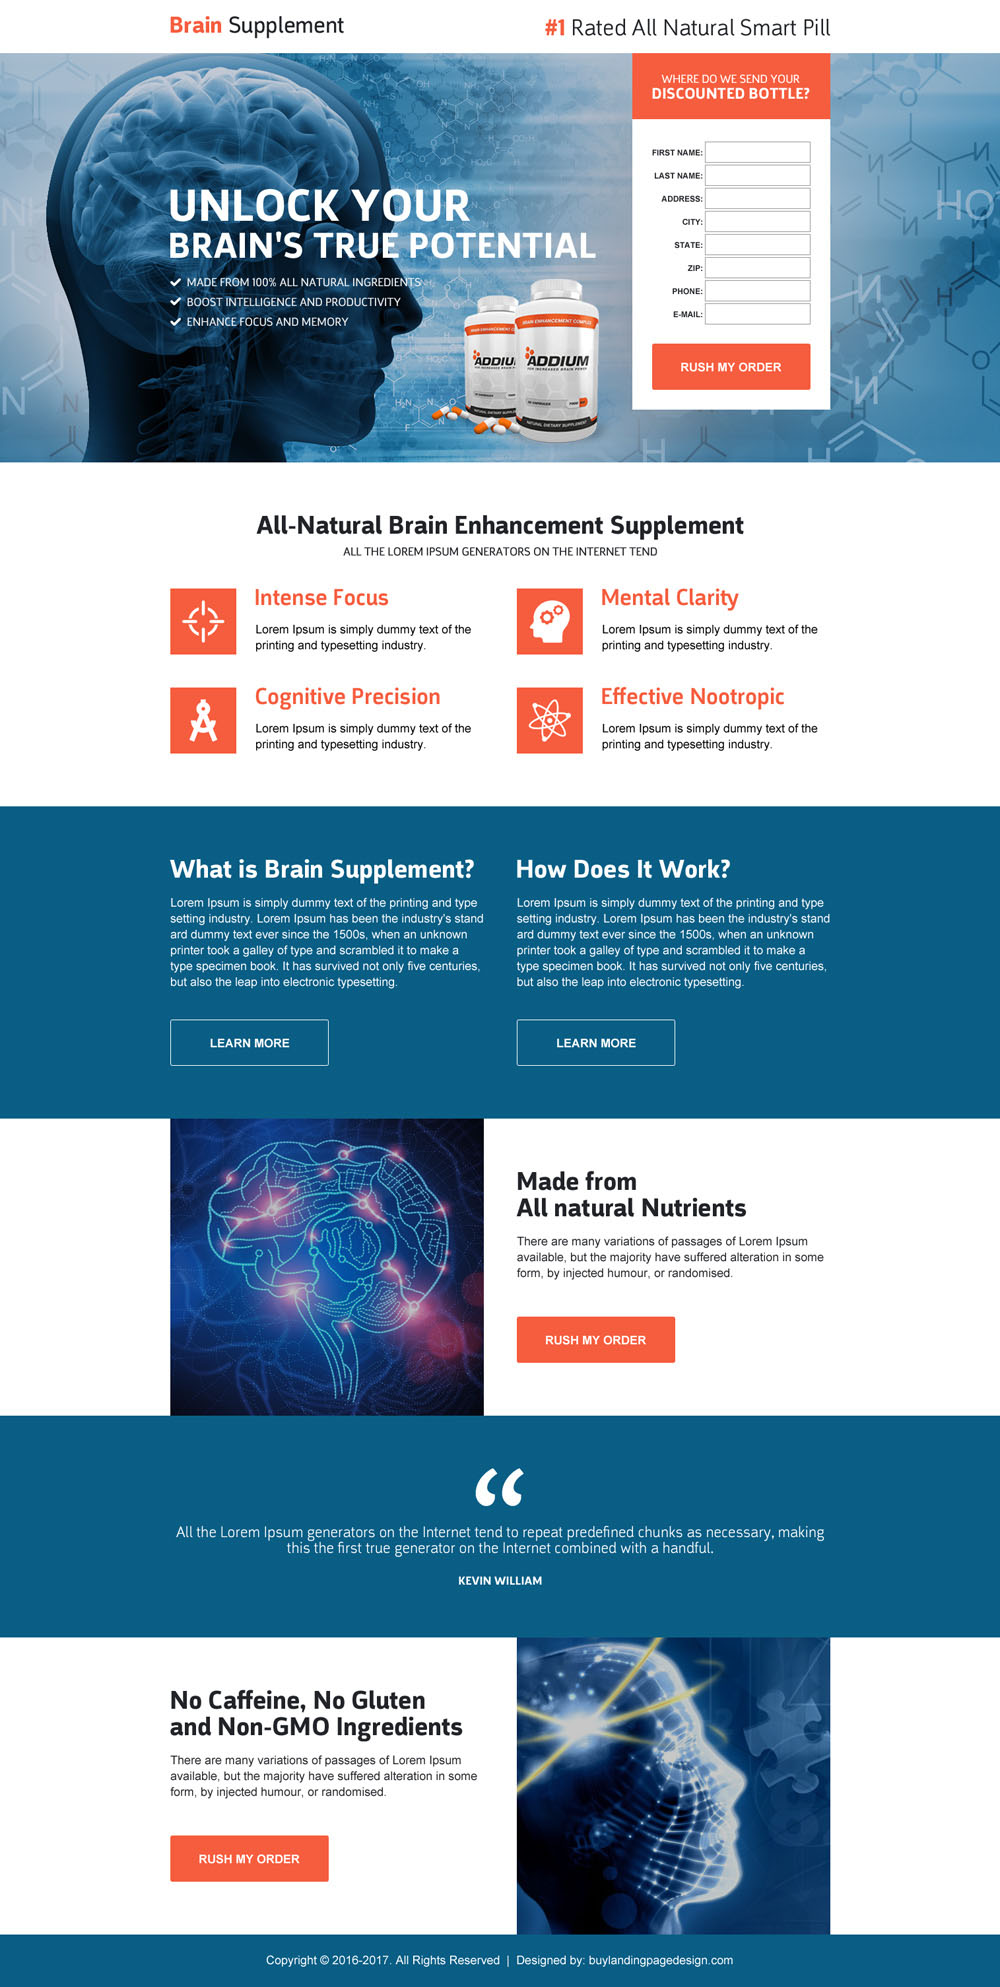 brain-supplement-product-selling-lead-capture-landing-page-design-003